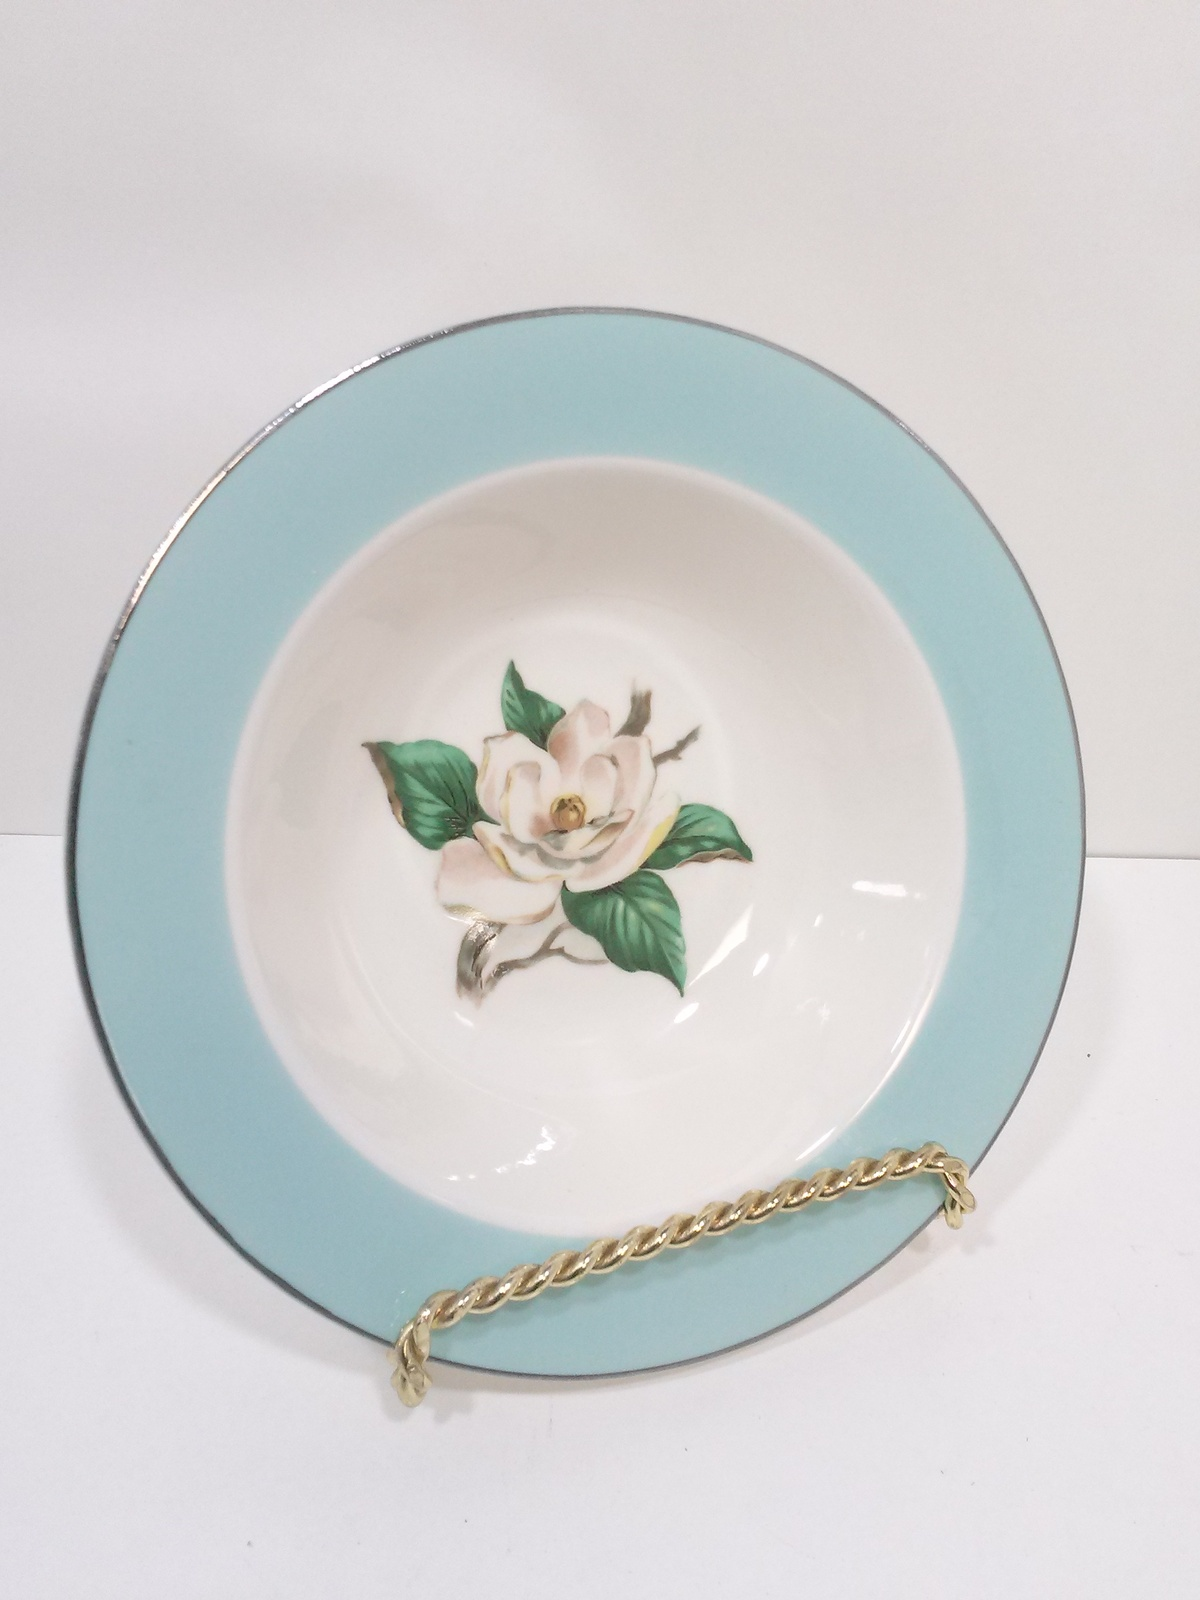 Primary image for Turquoise Magnolia Lifetime China Berry Bowl LTC12 by Lifetime